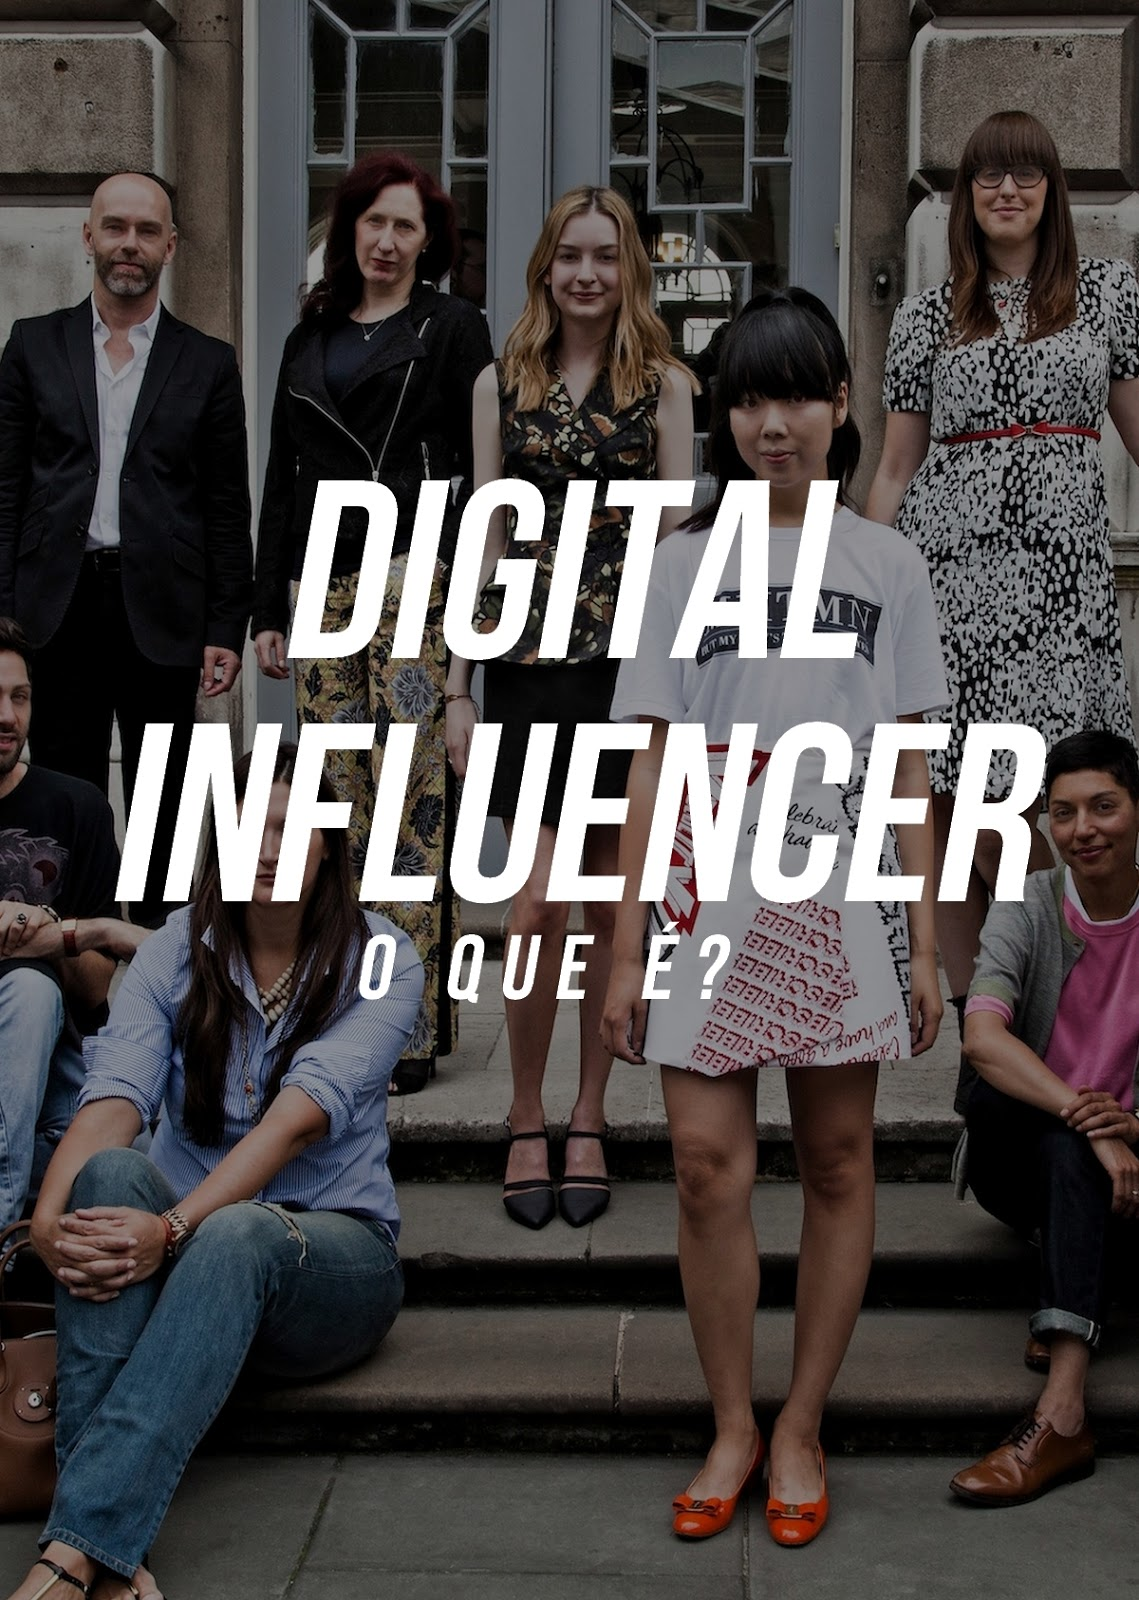 O que é Digital Influencer?